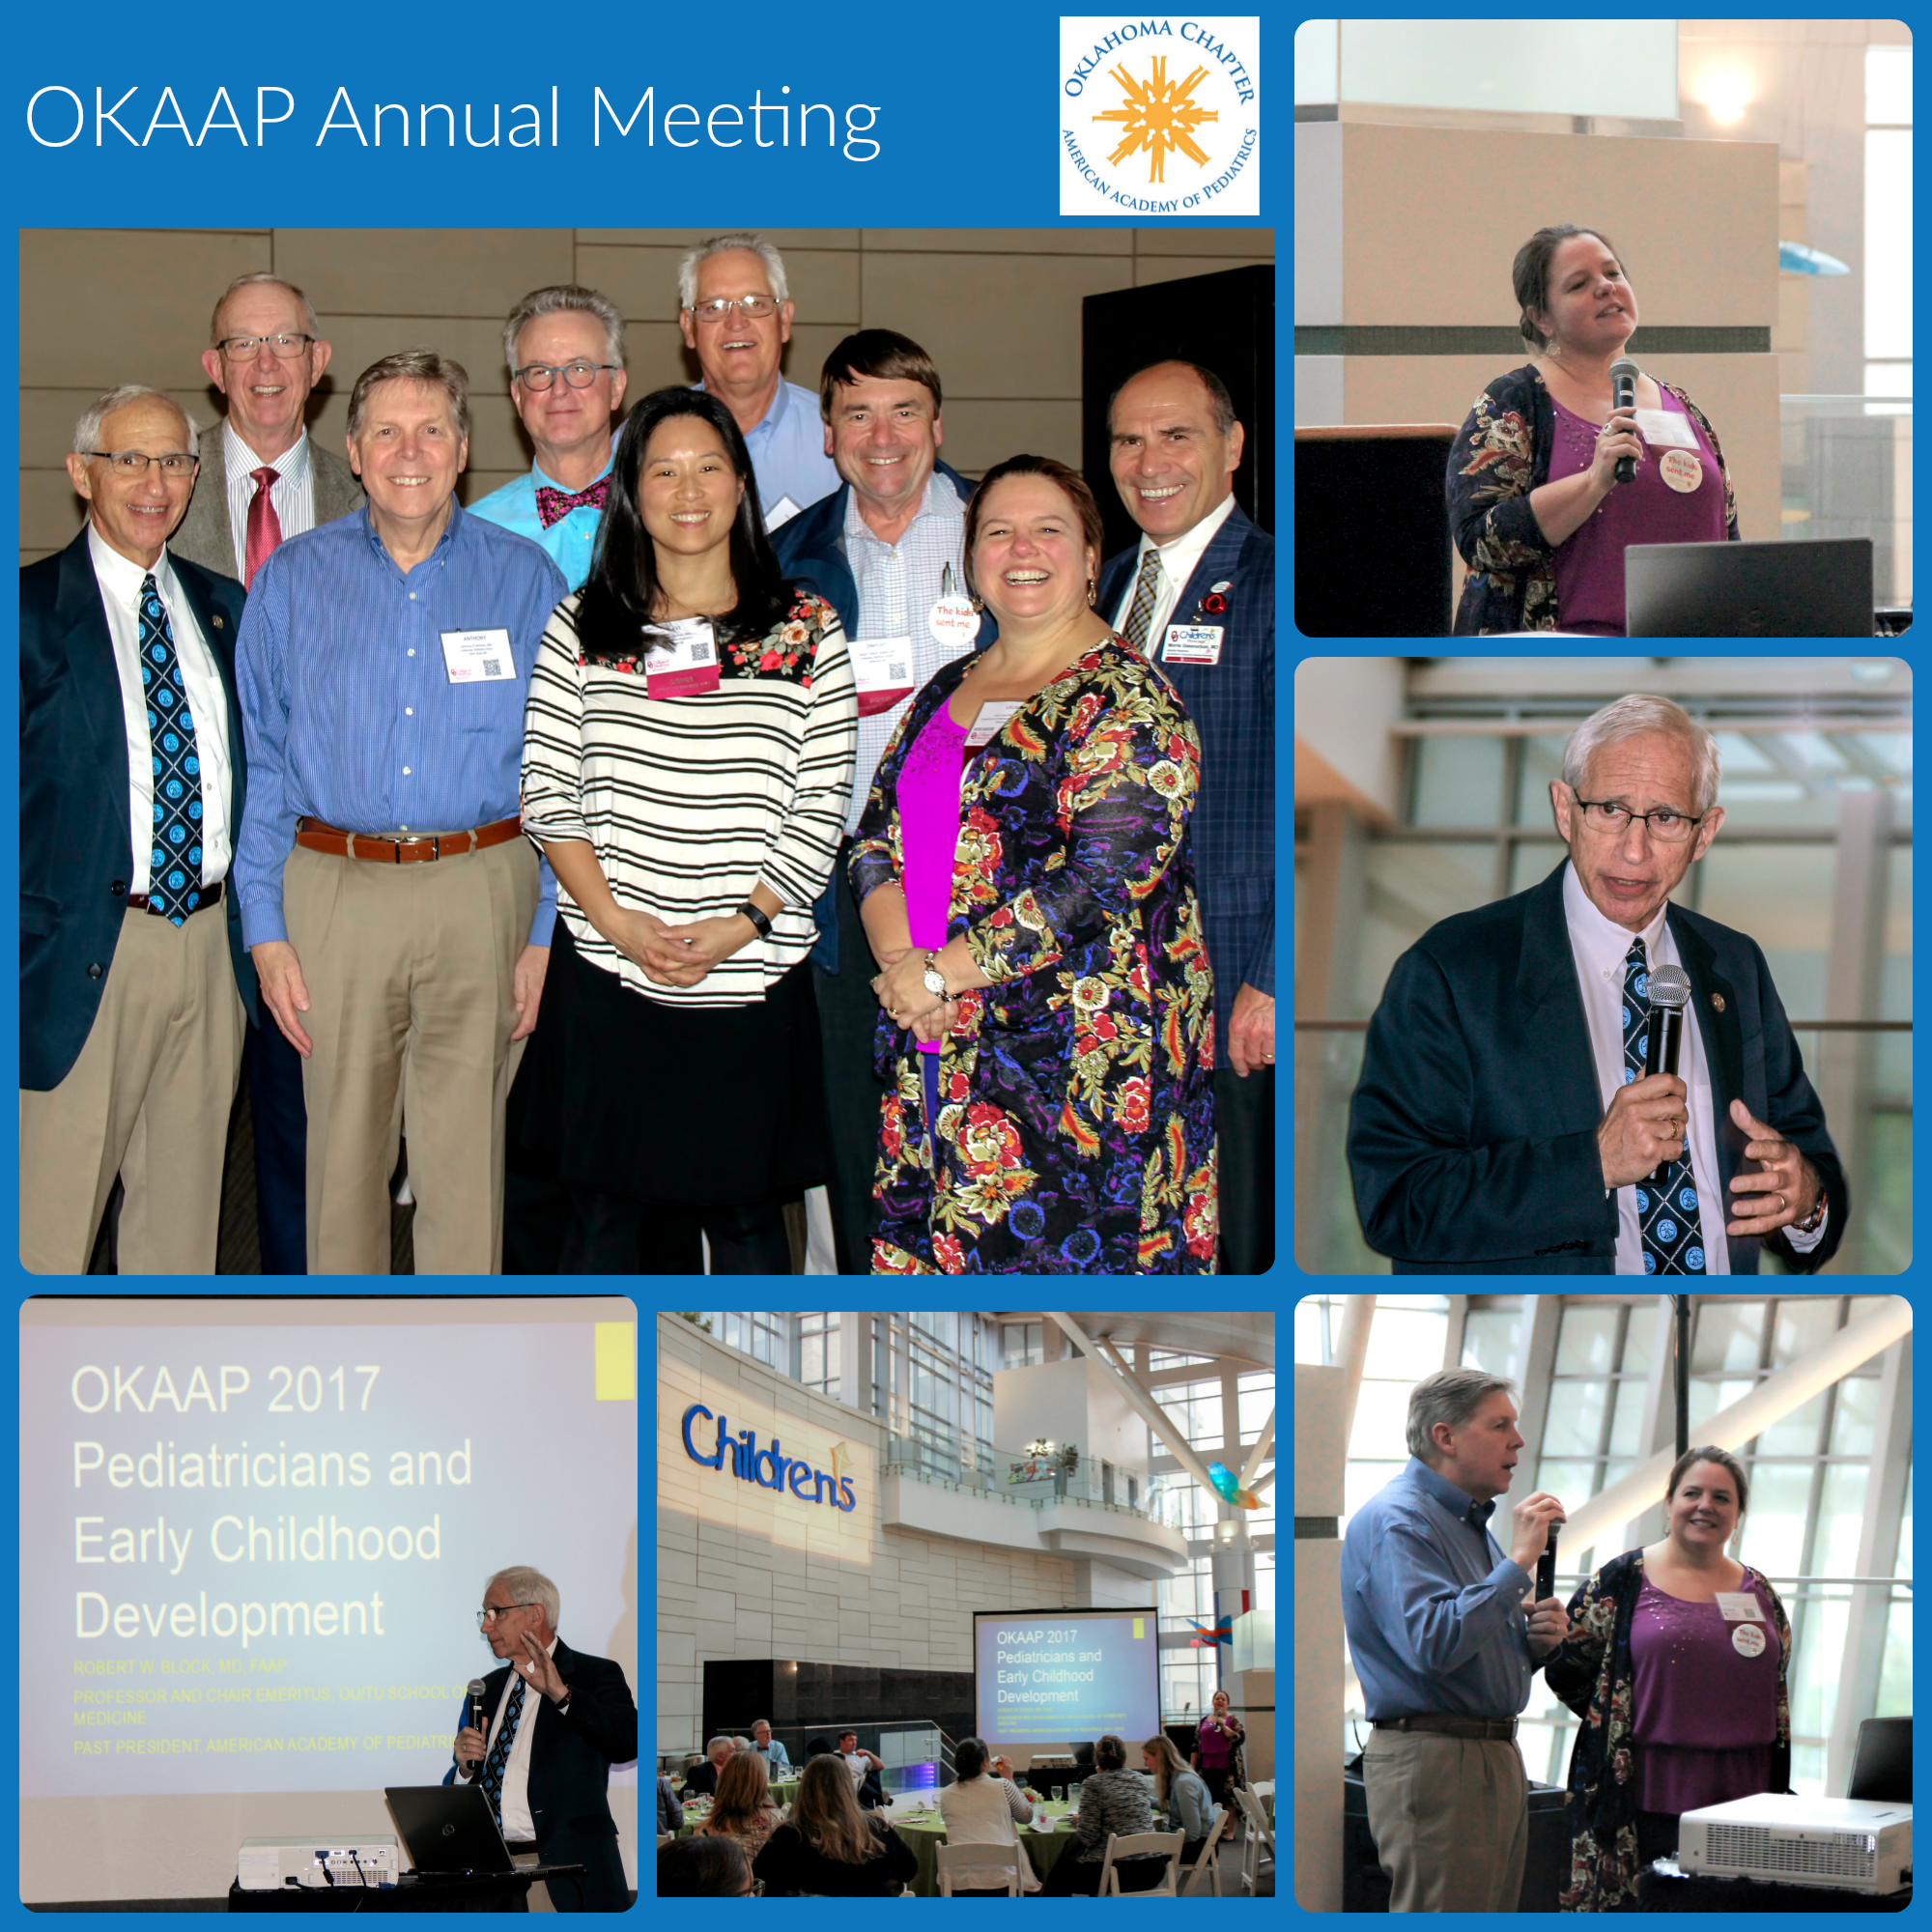 OKAAP Annual Meeting Collage